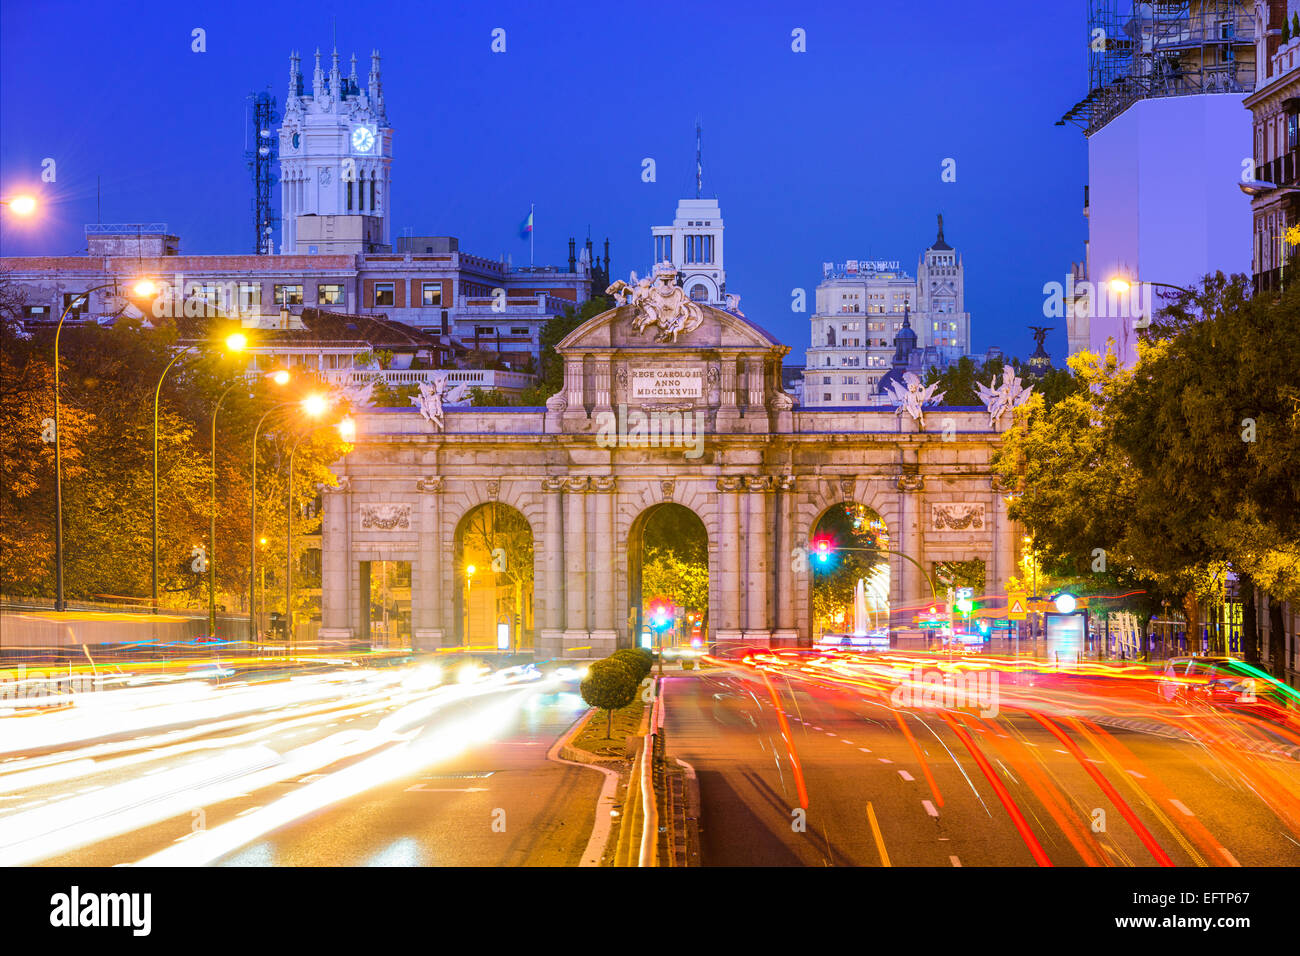 Madrid, Spain cityscape at Puerta de Alcala Gate and Calle de Alcala. - Stock Image